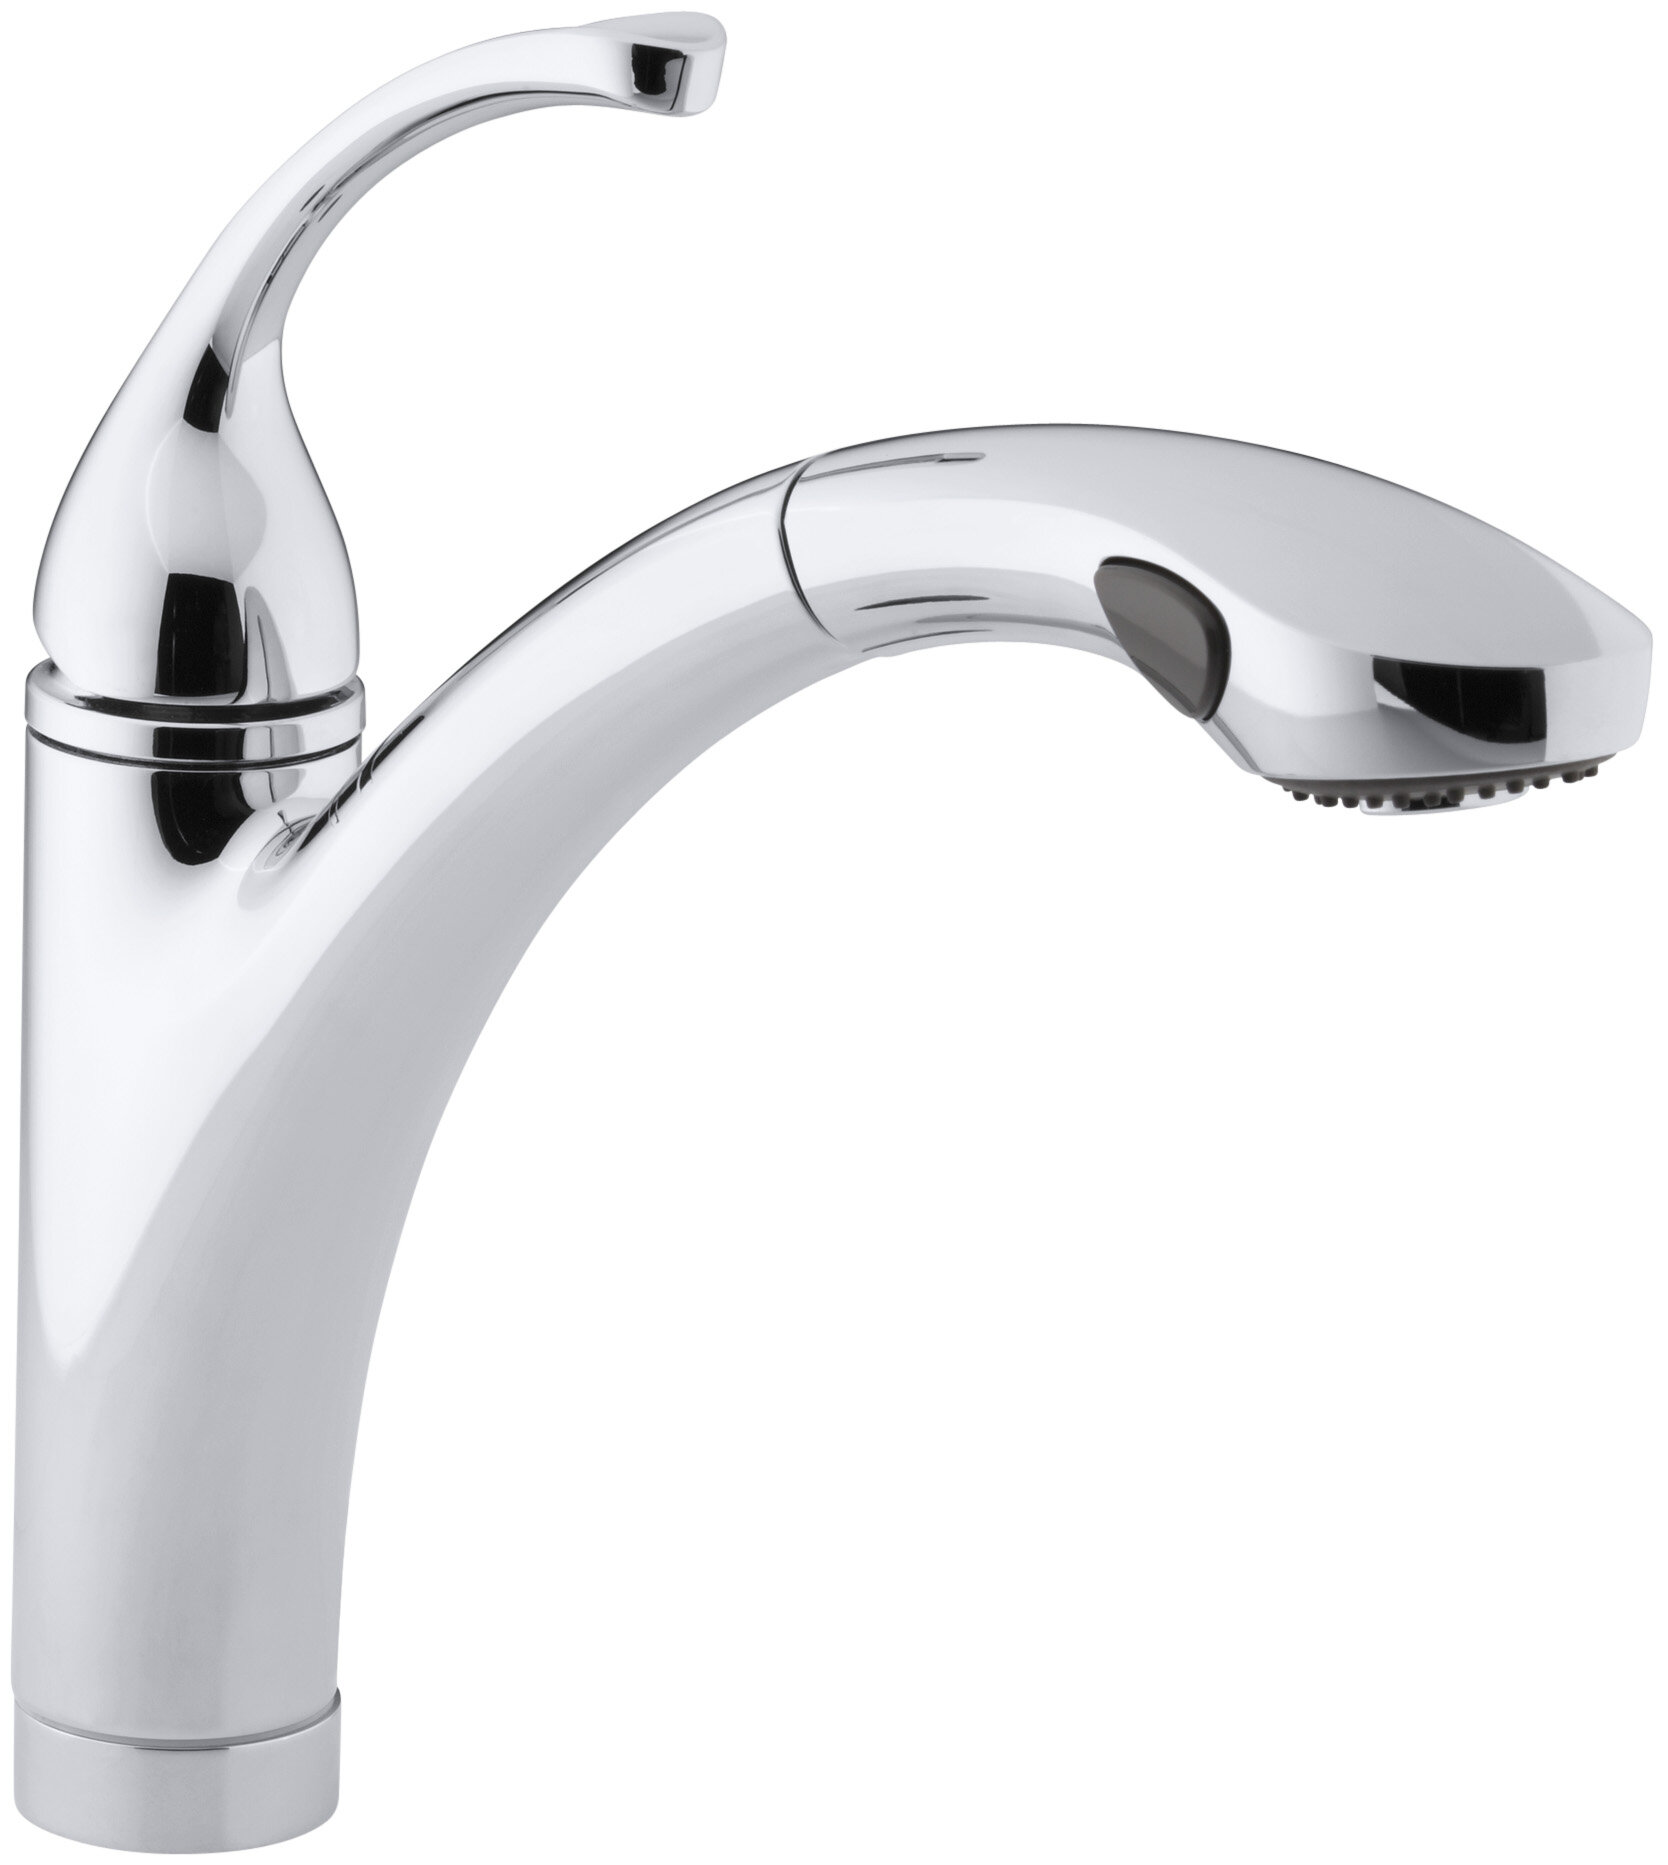 K 10433 Bn Vs G Kohler Forté Single Hole Or 3 Kitchen Sink Faucet With 10 1 8 Pullout Spray Spout And Masterclean Reviews Wayfair